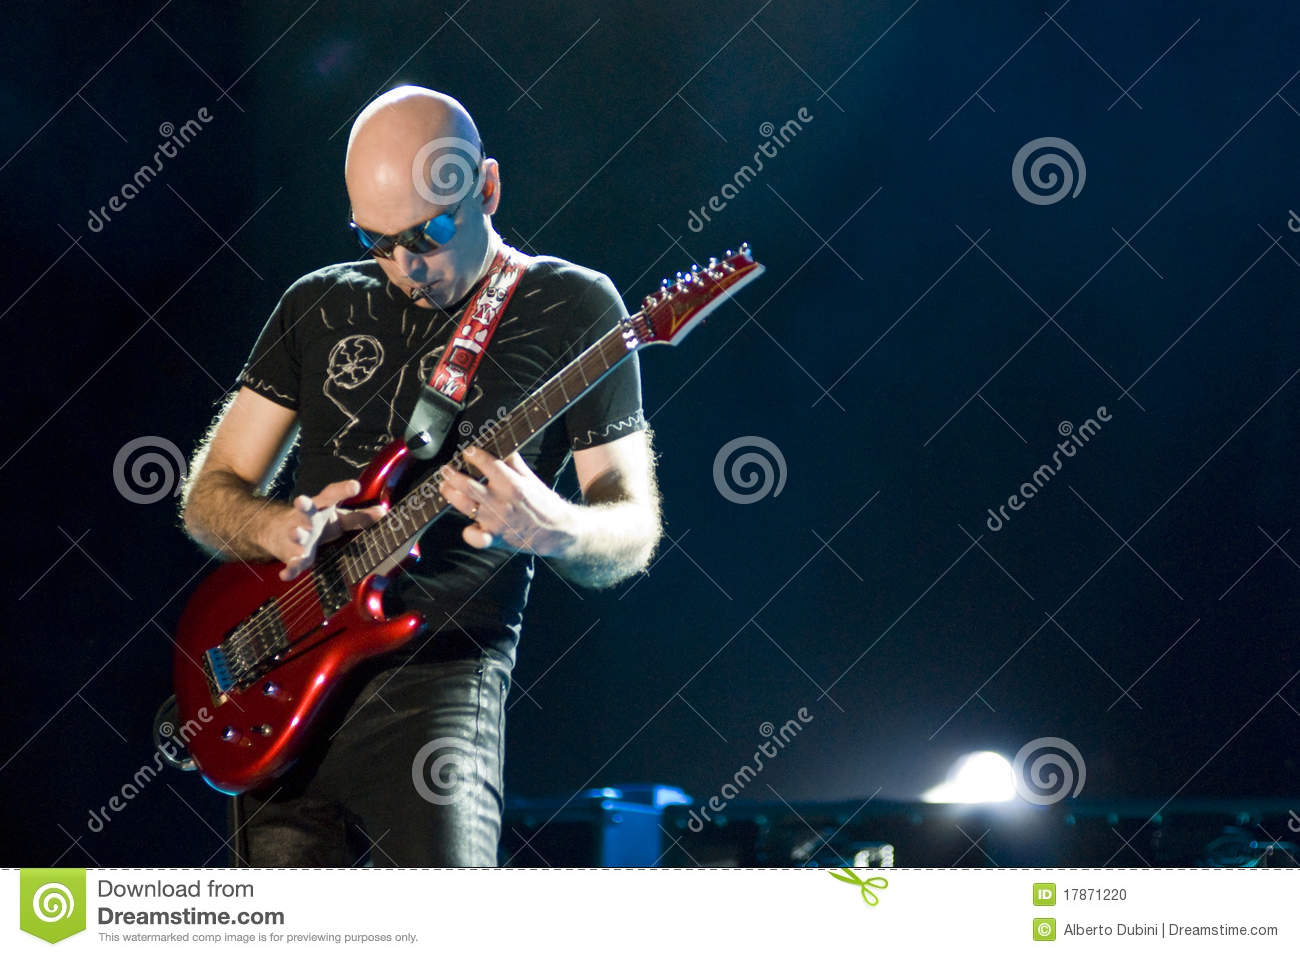 joe satriani in concert editorial image image 17871220. Black Bedroom Furniture Sets. Home Design Ideas